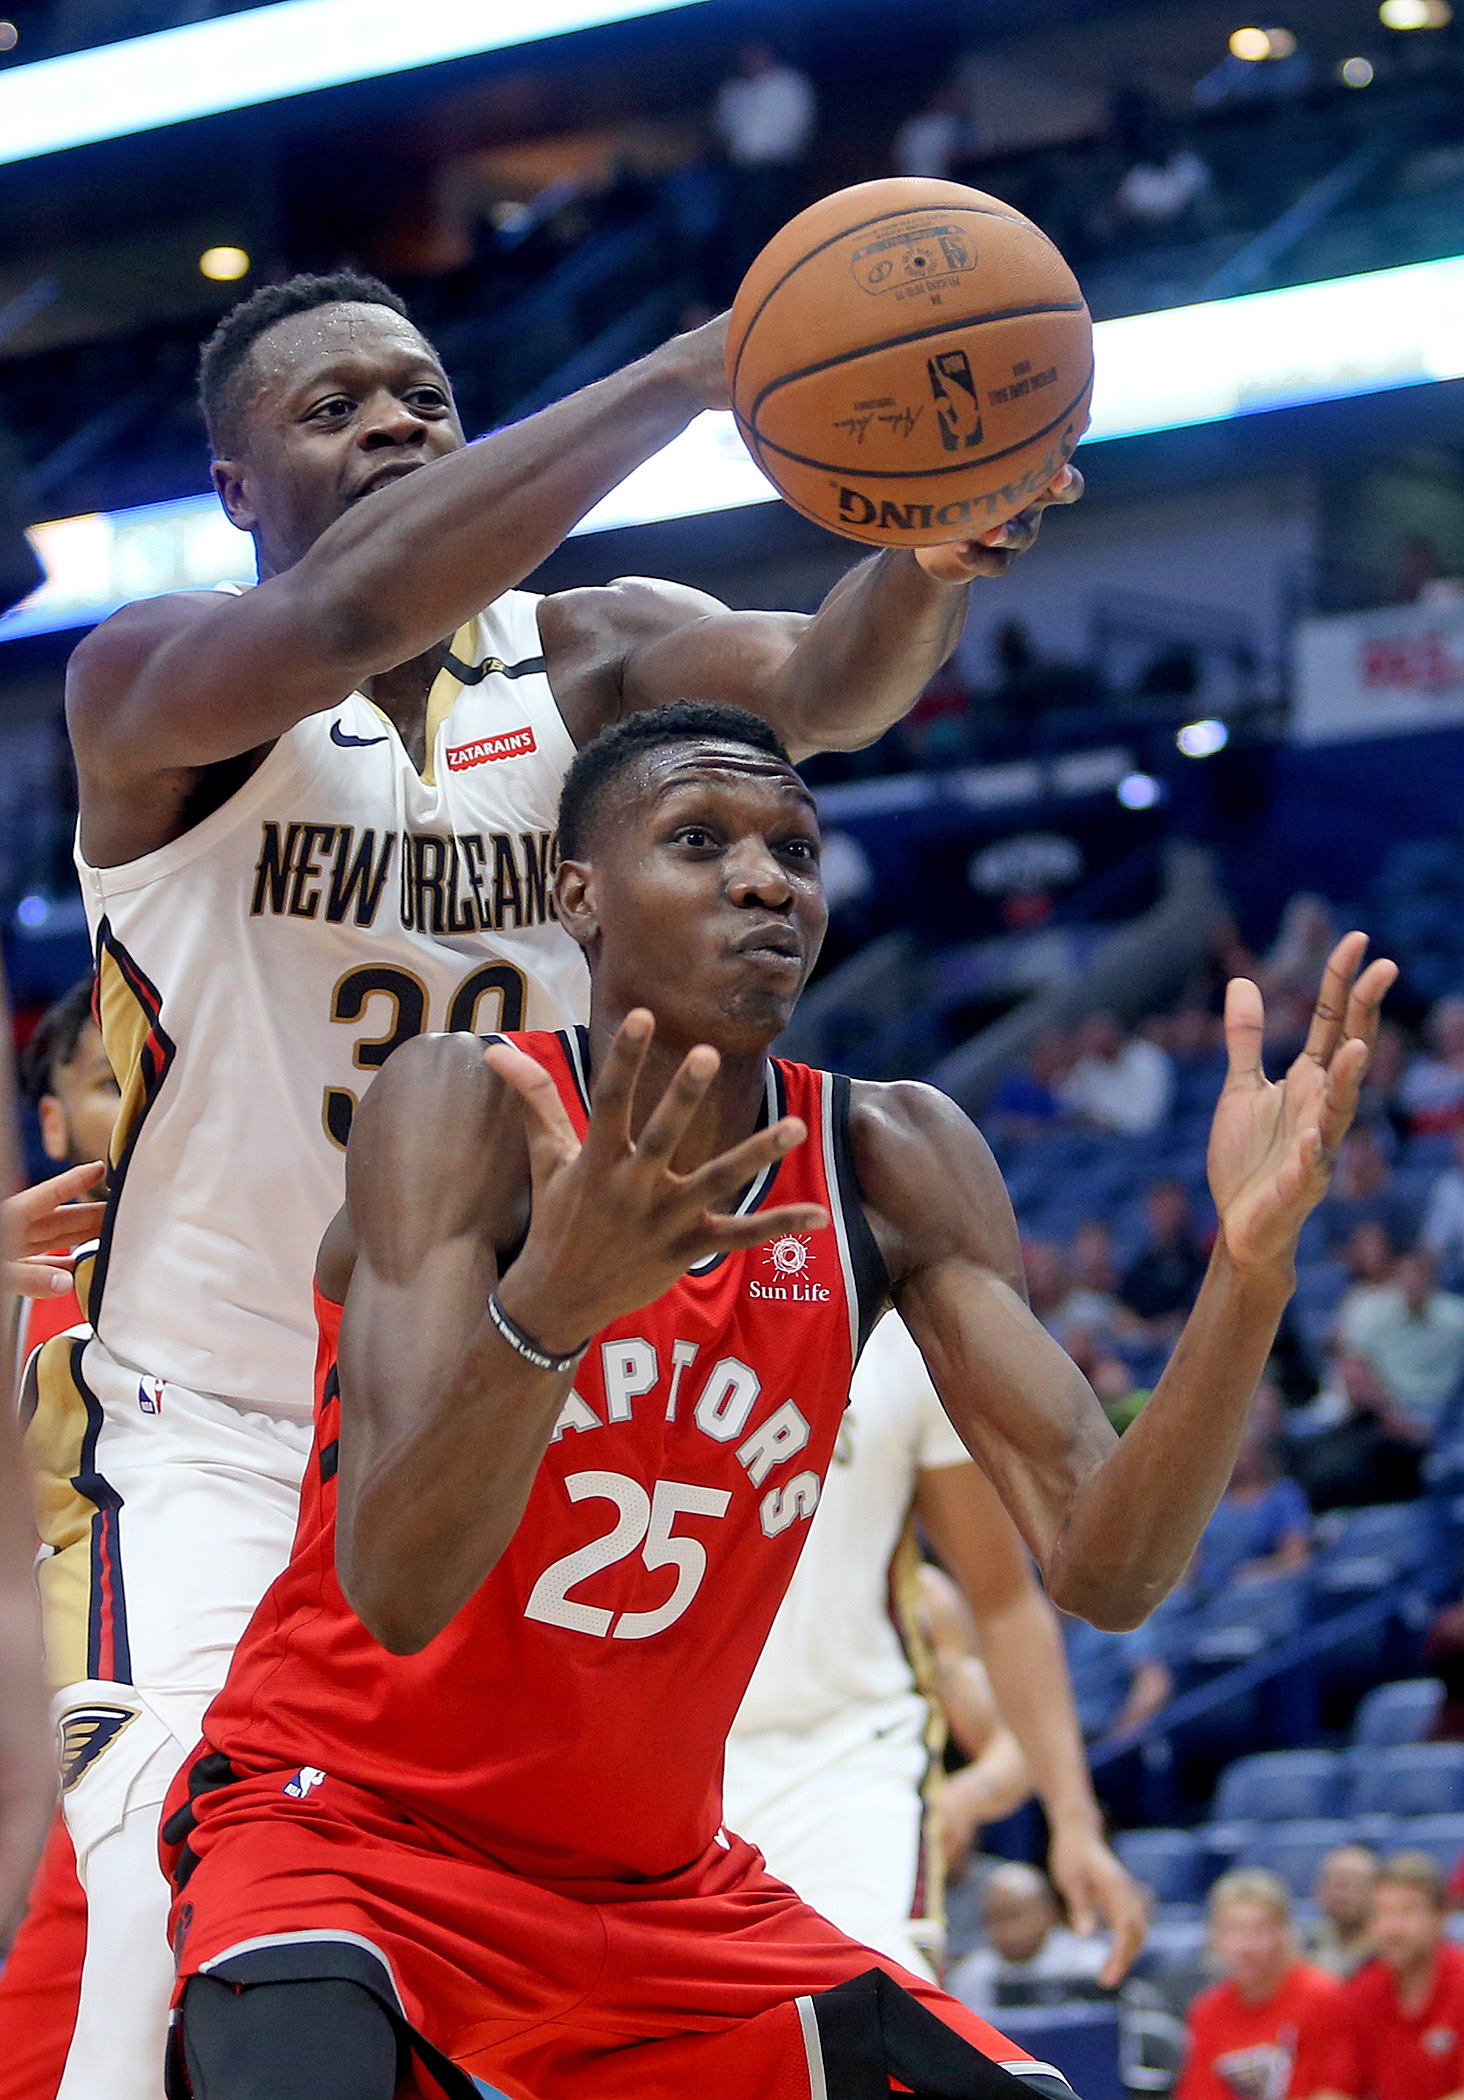 New Orleans Pelicans forward Julius Randle (30) takes a rebound away from Toronto Raptors forward Chris Boucher (25) during the preseason game between the Toronto Raptors and New Orleans Pelicans at the Smoothie King Center on Thursday, October 11, 2018. (Photo by Michael DeMocker, NOLA.com | The Times-Picayune)